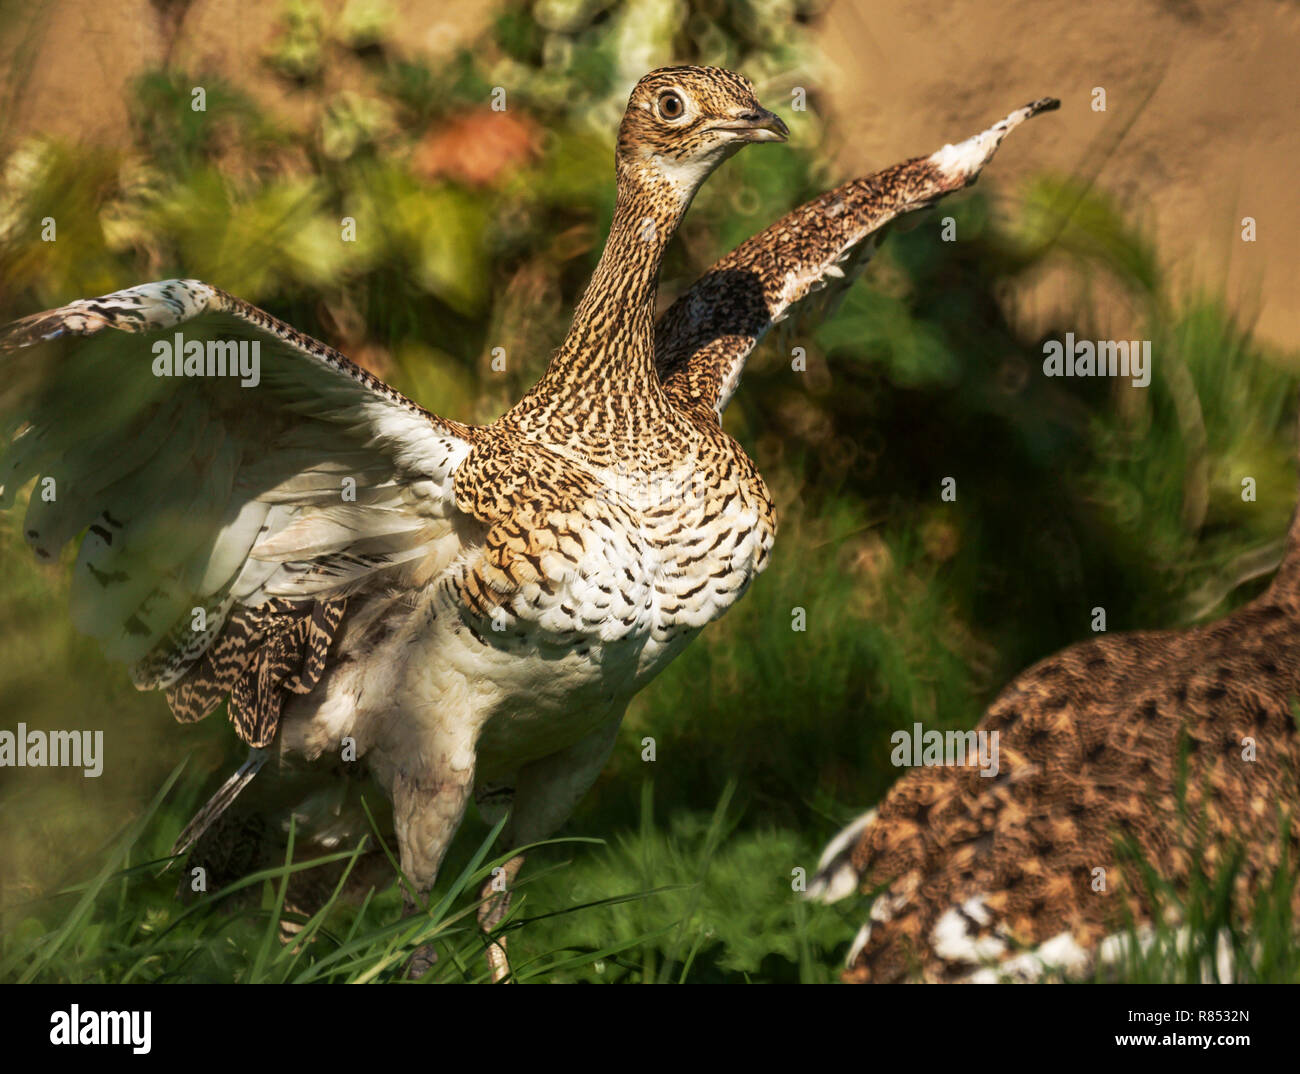 Little Bustard (Tetrax tetrax).In winter plumage.Adult about to bath - Stock Image